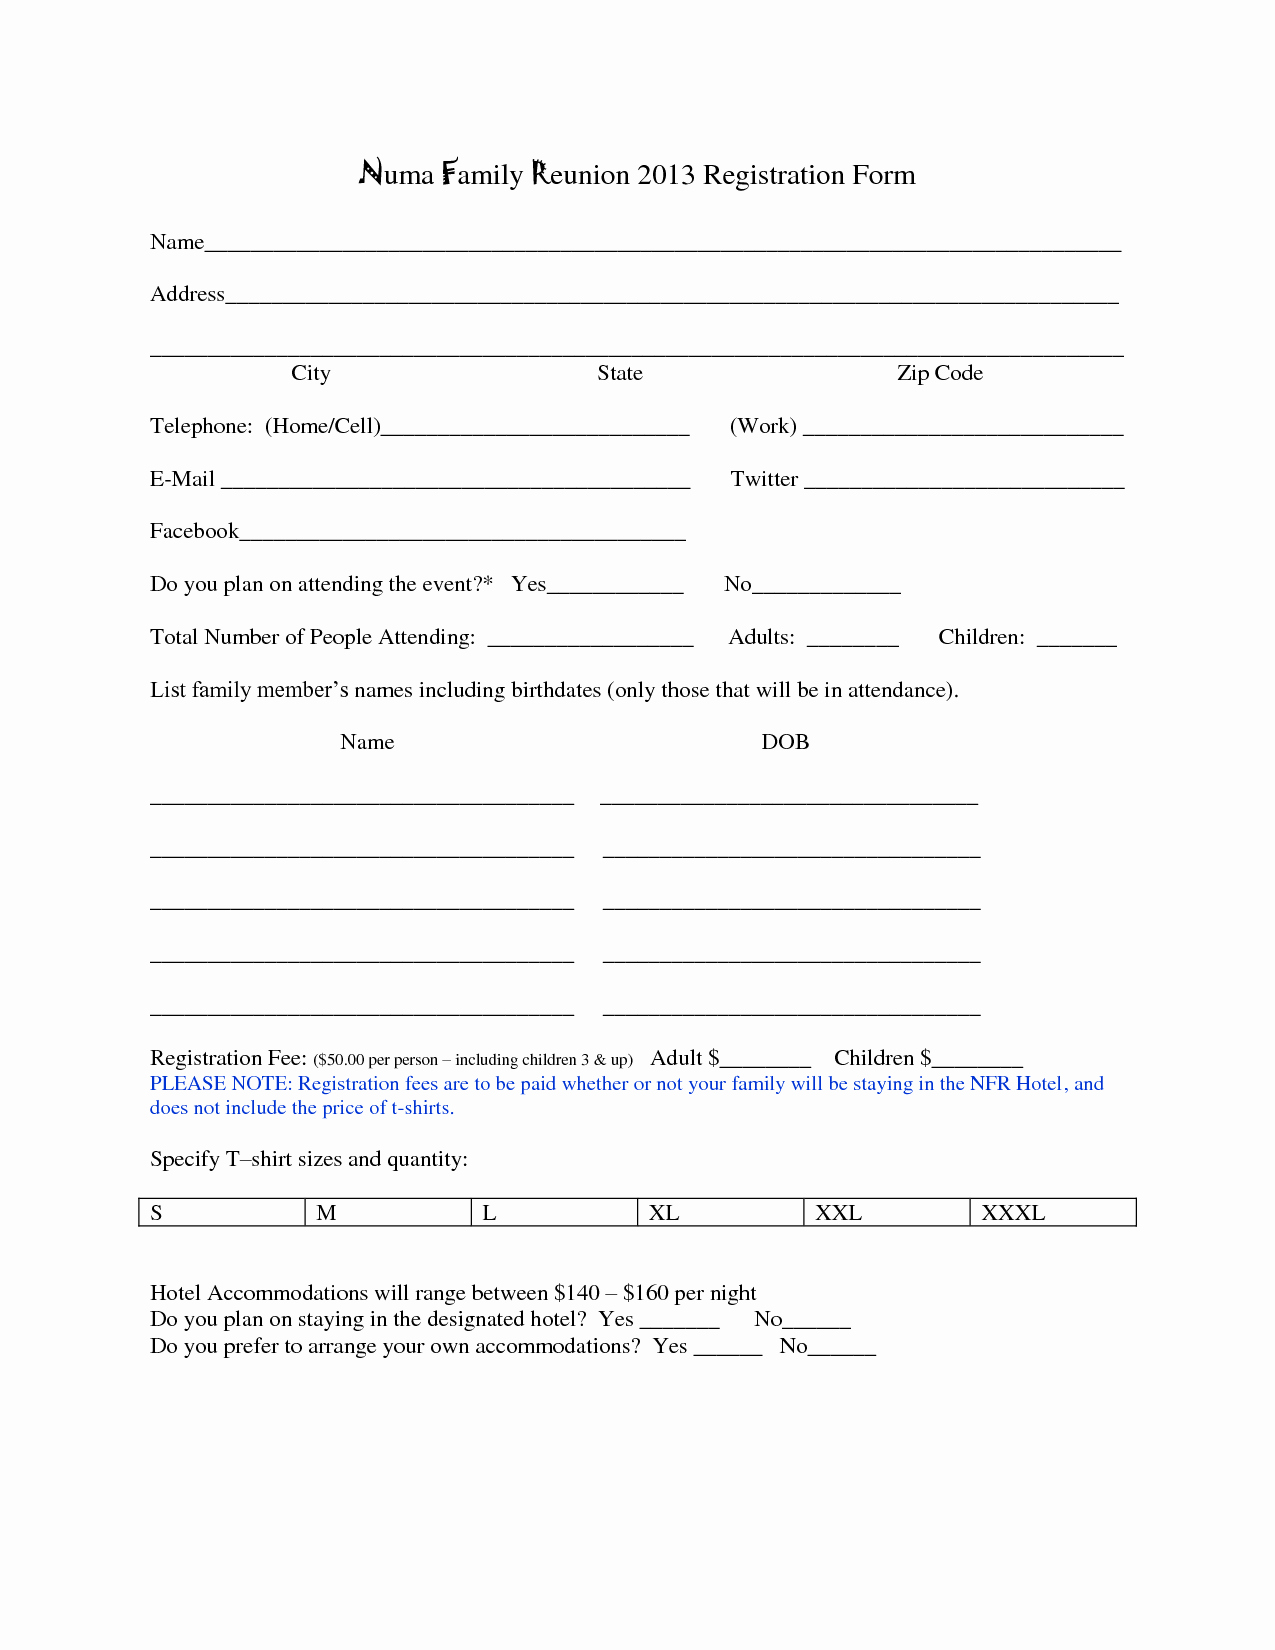 Free Registration forms Template Unique 7 Best Of Family Reunion forms Printable Free